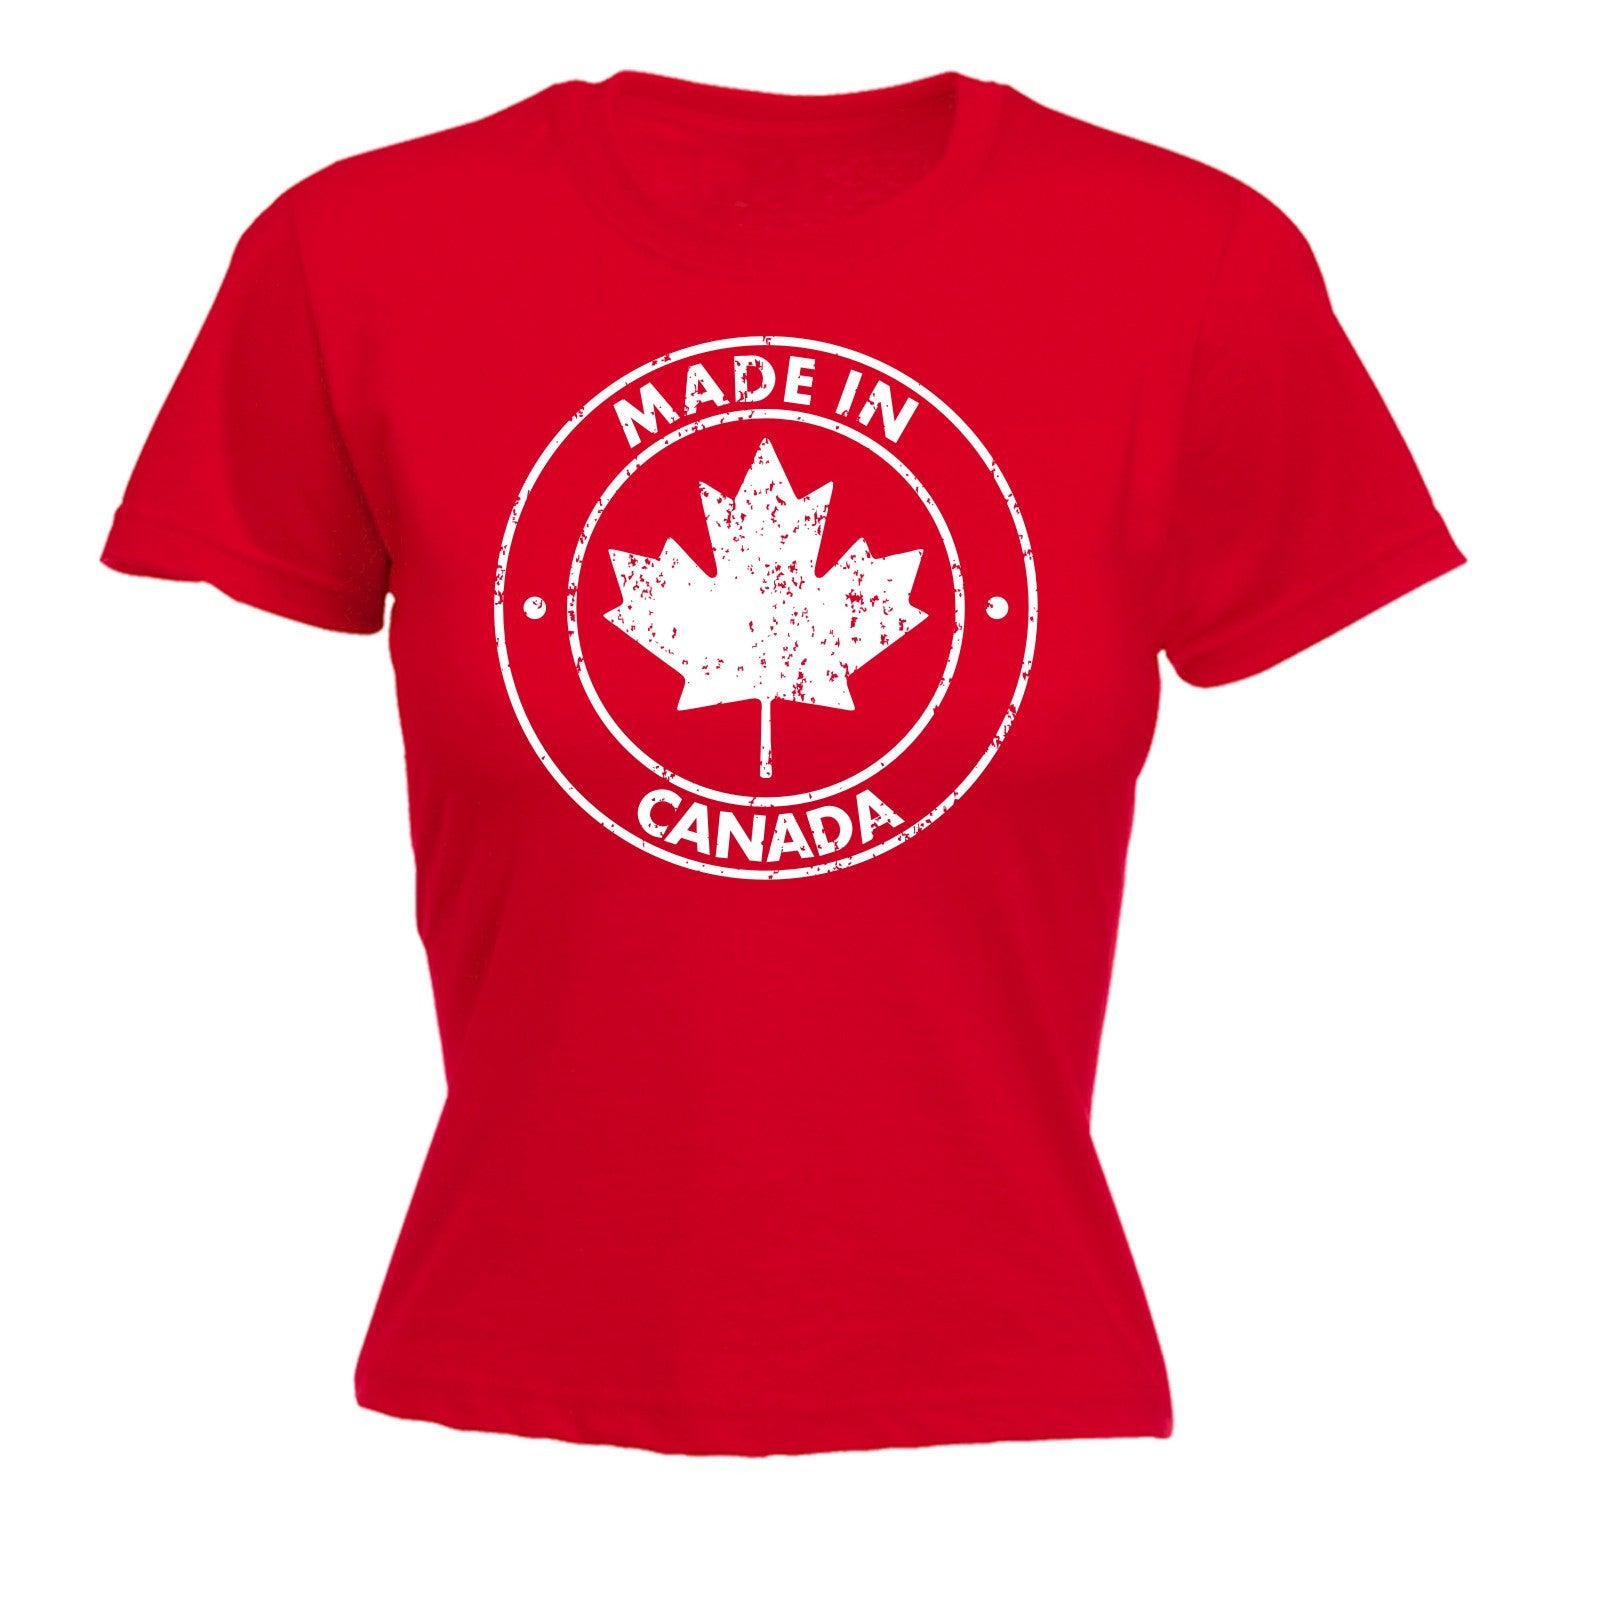 Made in canada womens t shirt canadian nation patriotic for Made in canada dress shirts